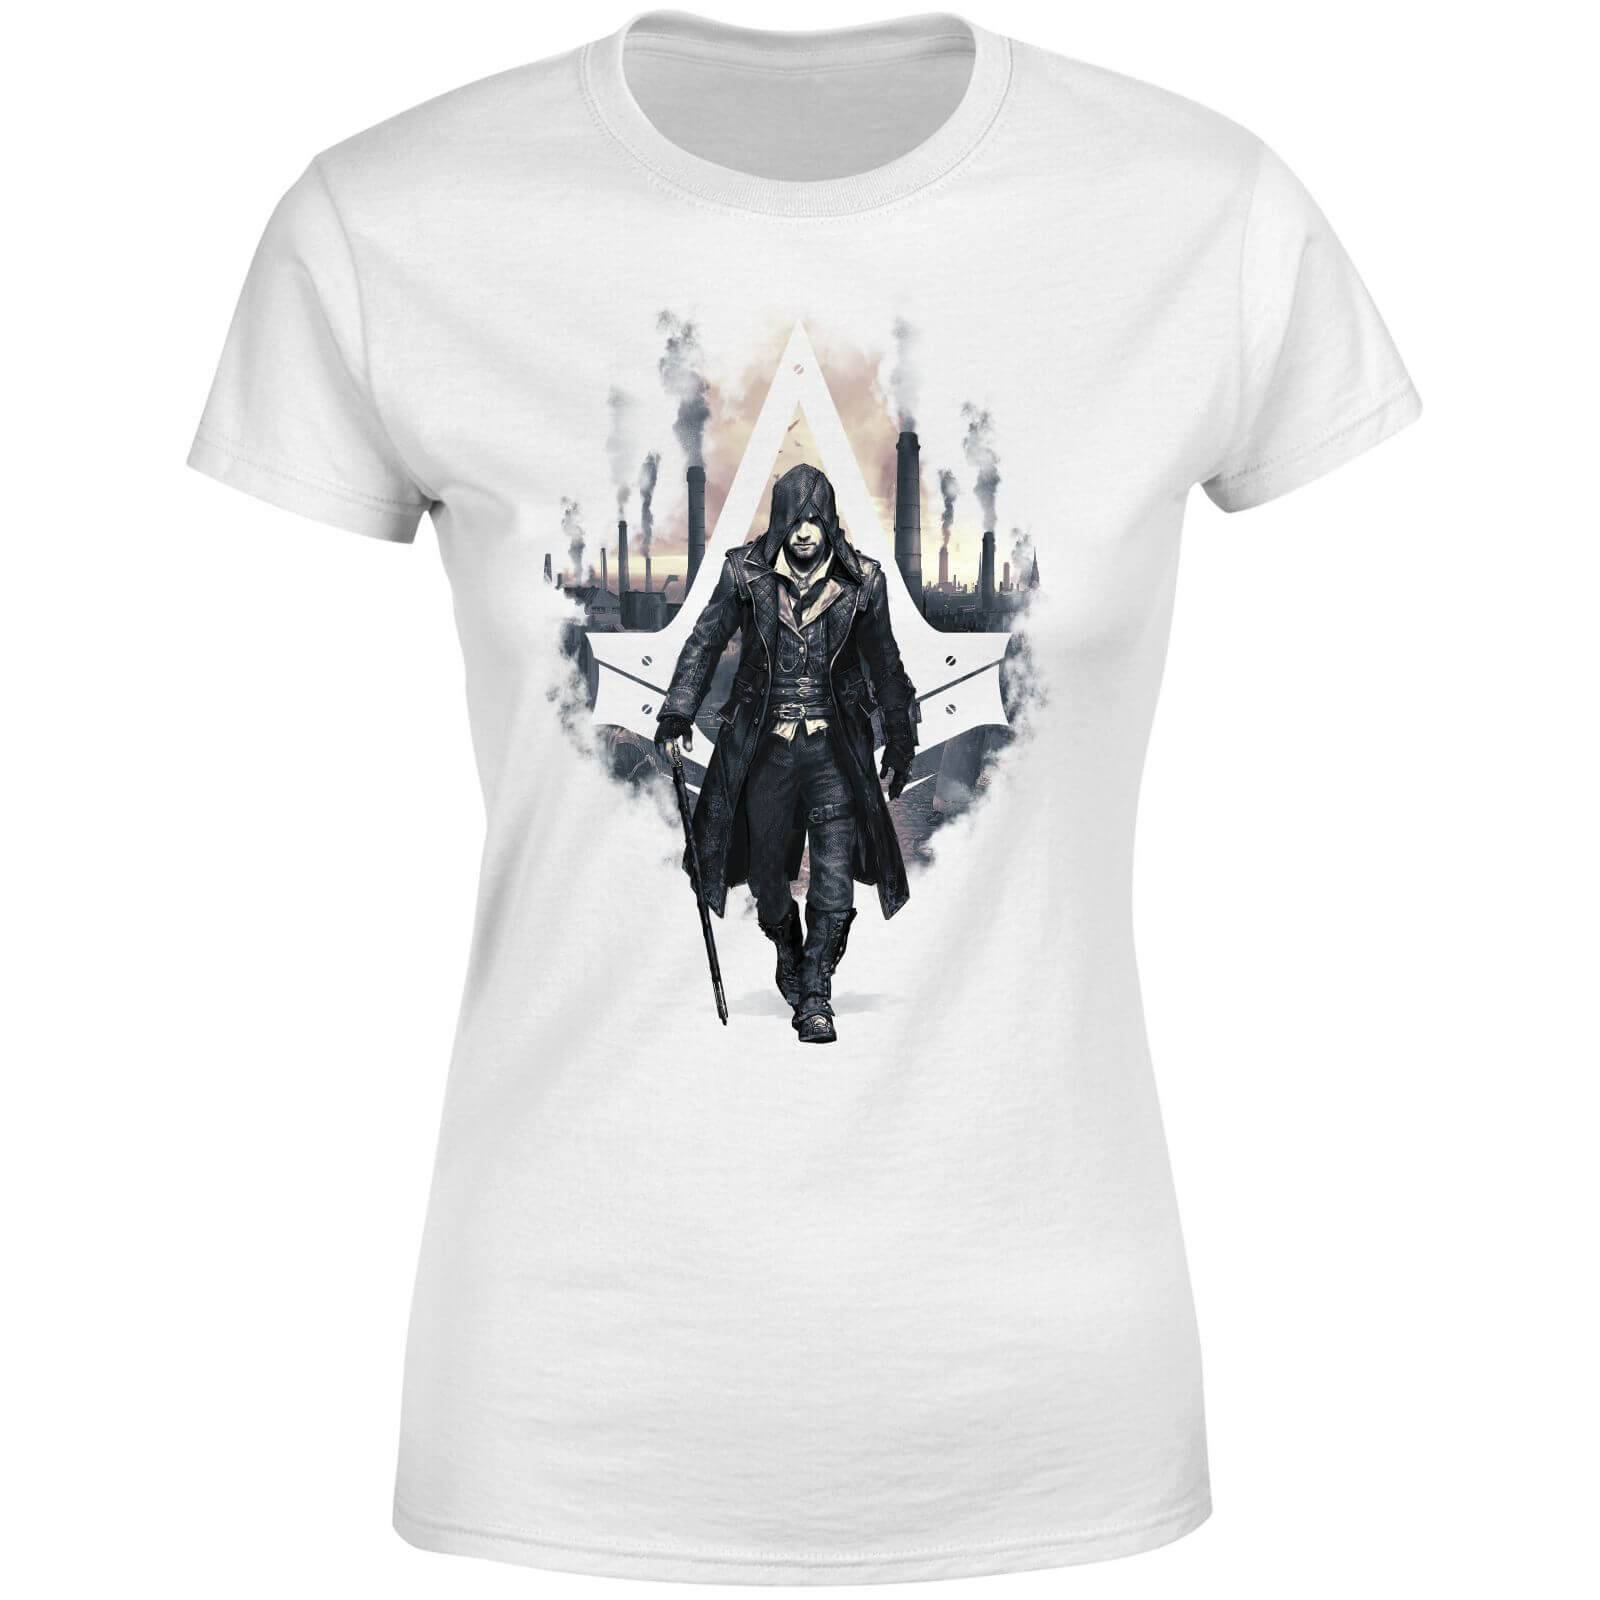 Assassin's Creed T-Shirt Femme London Skyline Assassin's Creed Syndicate - Blanc - L - Blanc